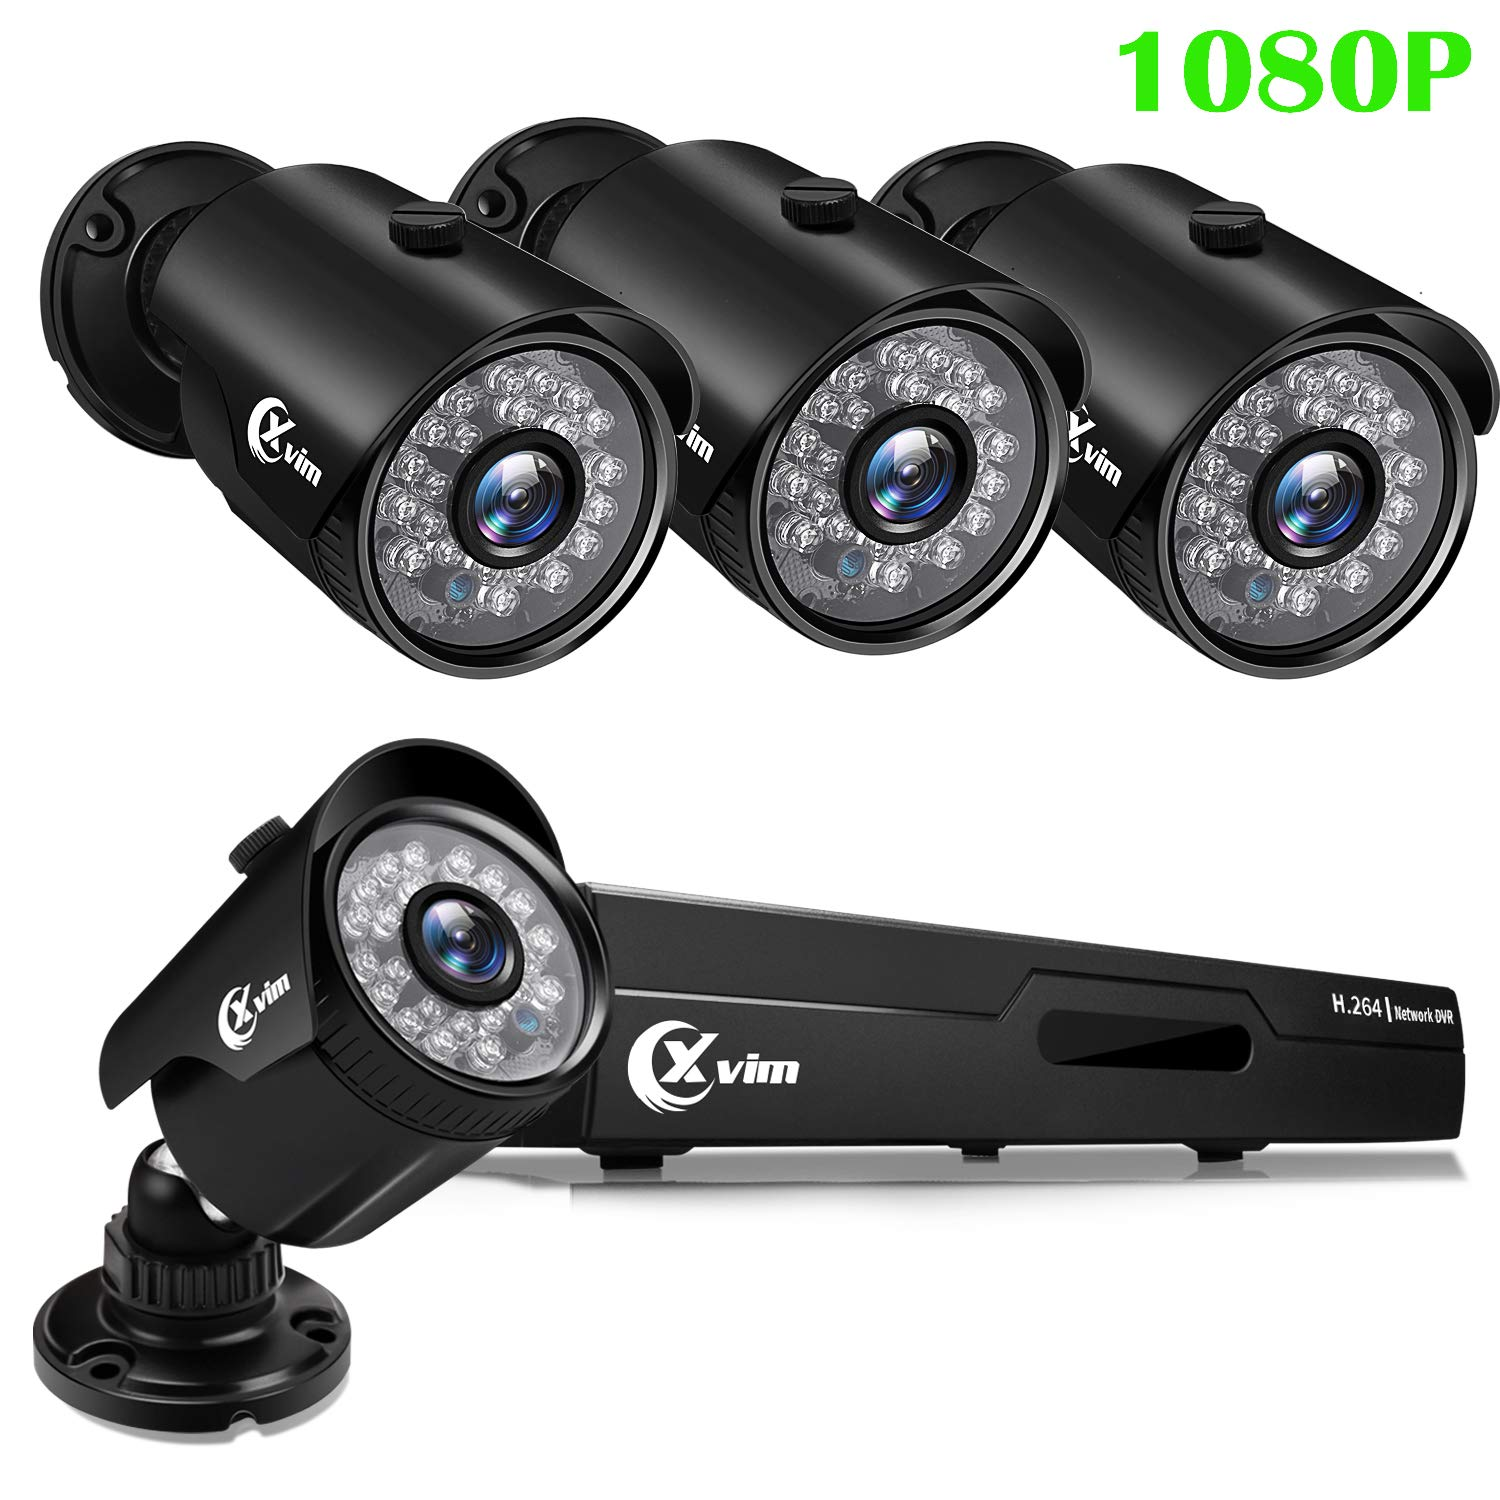 XVIM 1080P Home Security Camera System 4CH CCTV DVR Recorder 4pcs Full HD 1080P 1920TVL Indoor Outdoor Waterproof Surveillance Cameras Night Vision, Motion Alert, Easy Remote Access (No Hard Drive) by X-VIM